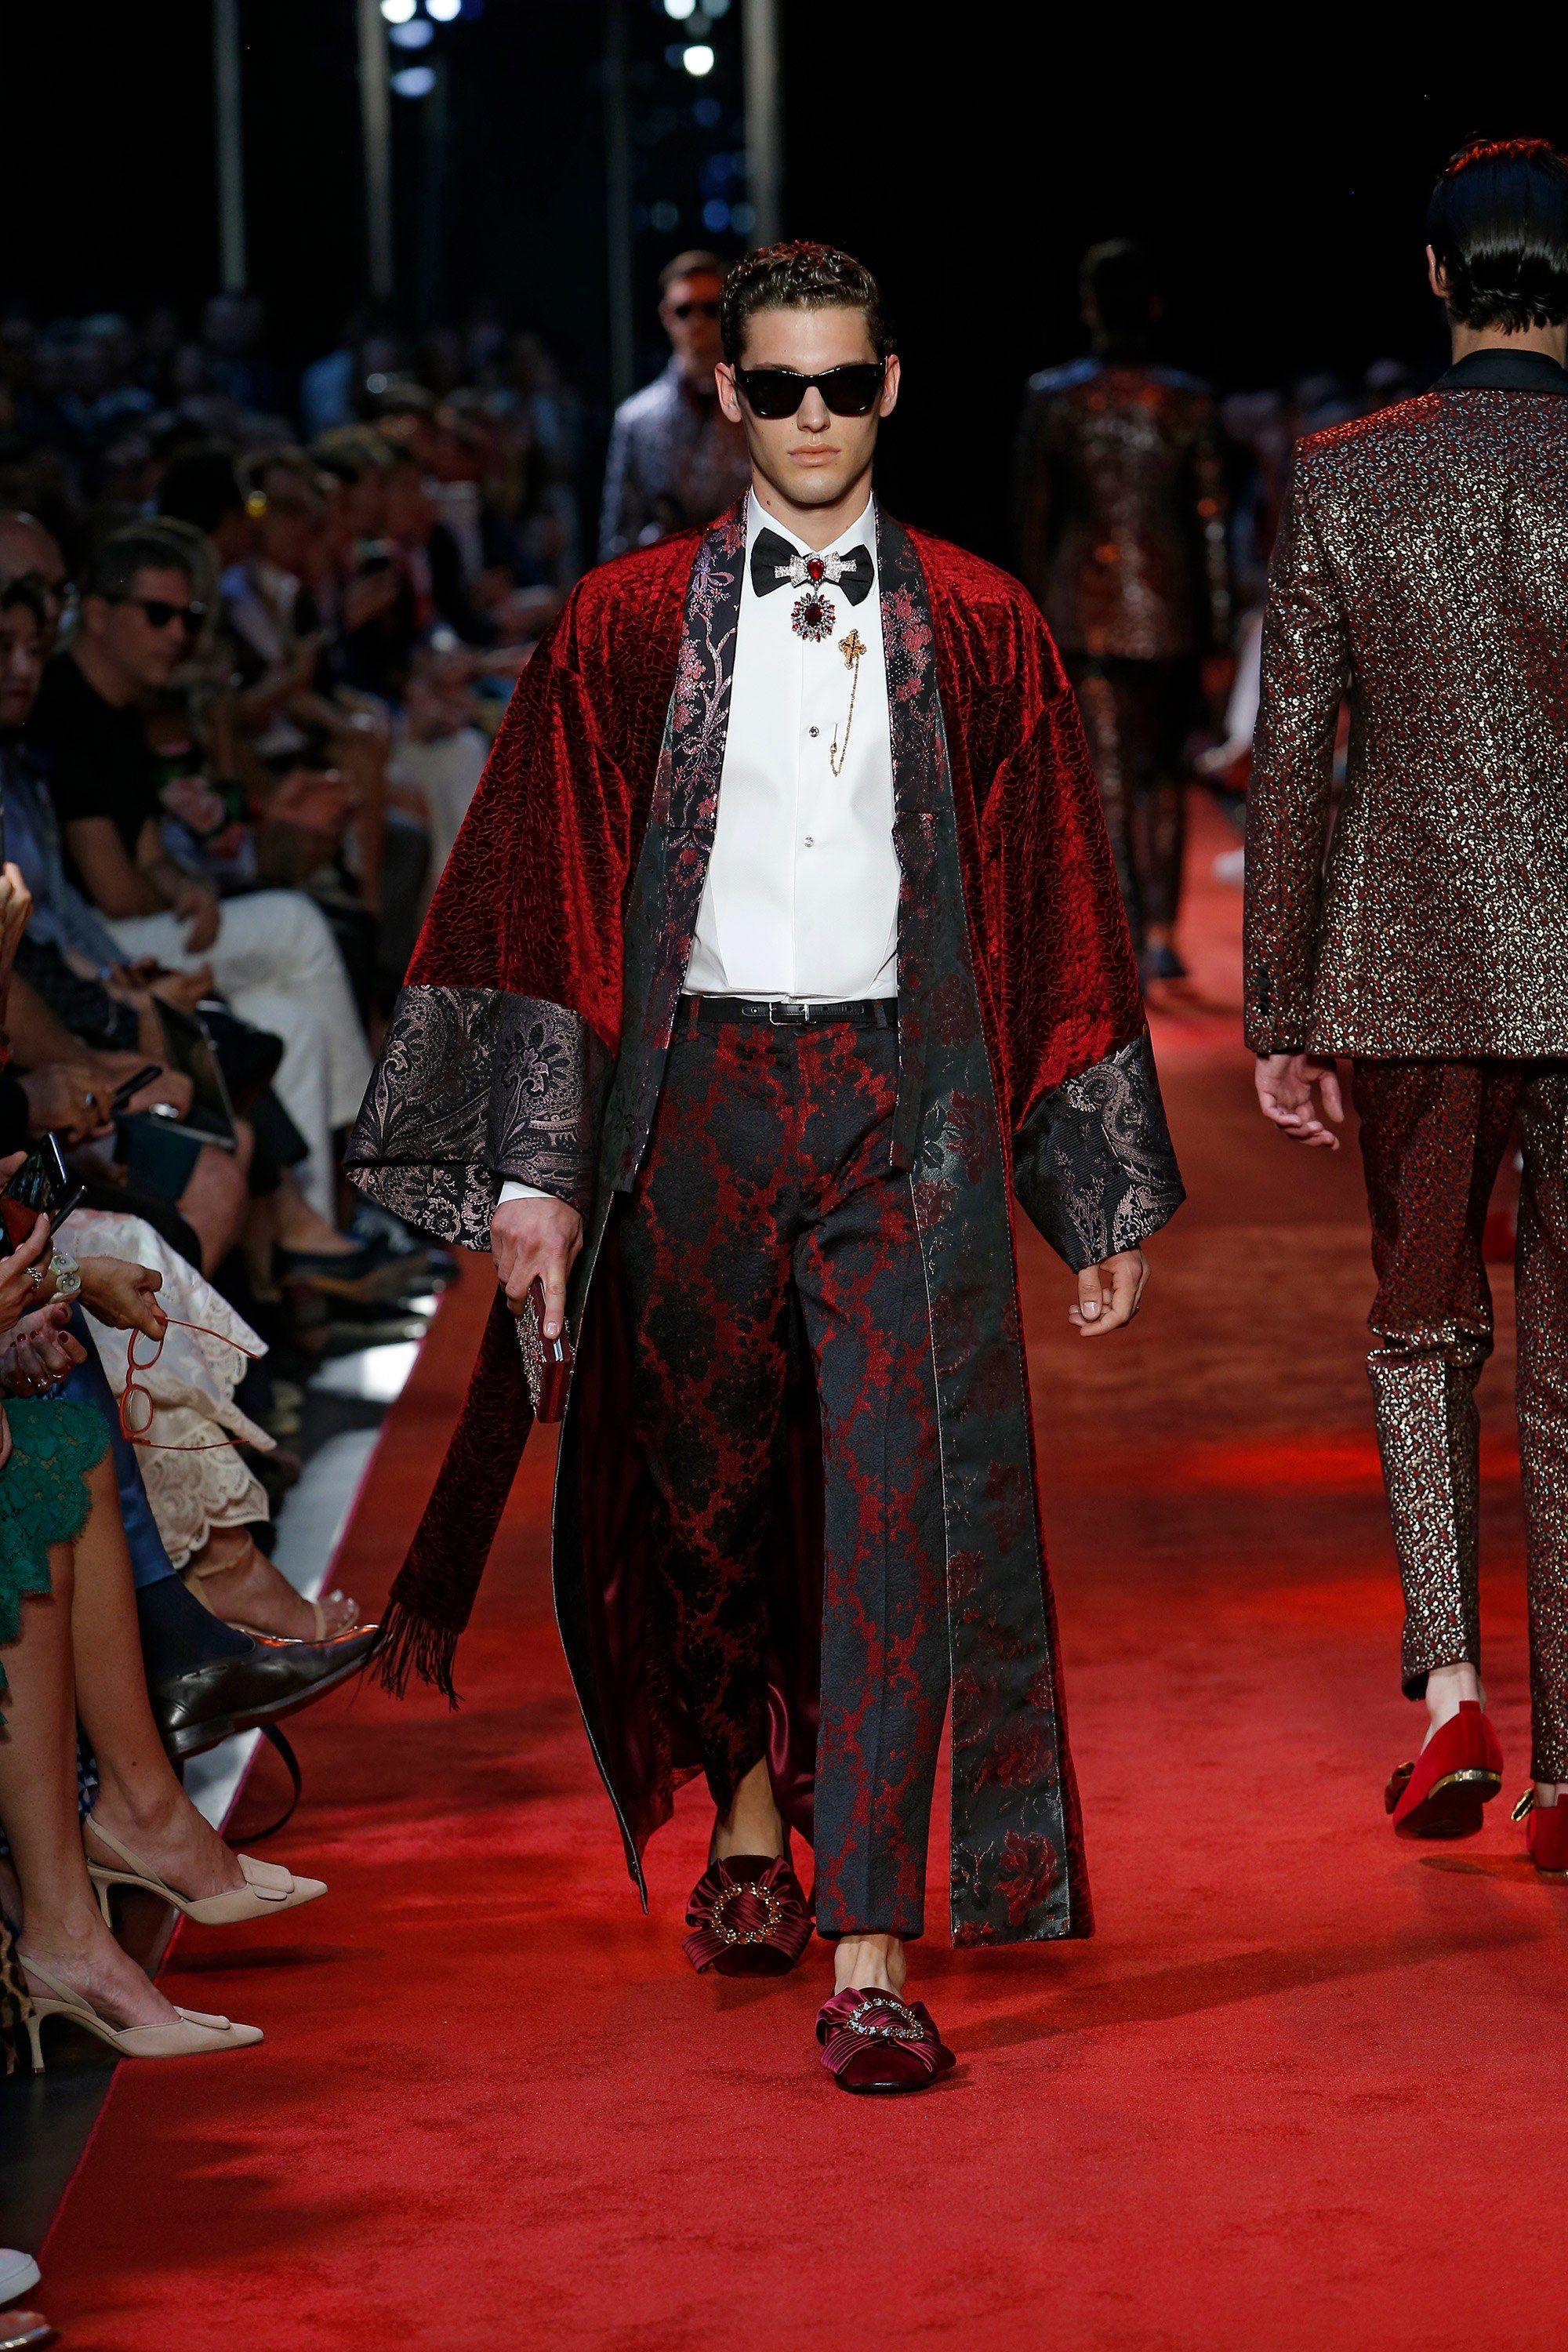 Brocade Parade Dolce Gabbana Define Their Finery With A Tailoring Show In Milan Dolce And Gabbana Milan Fashion Weeks Fashion